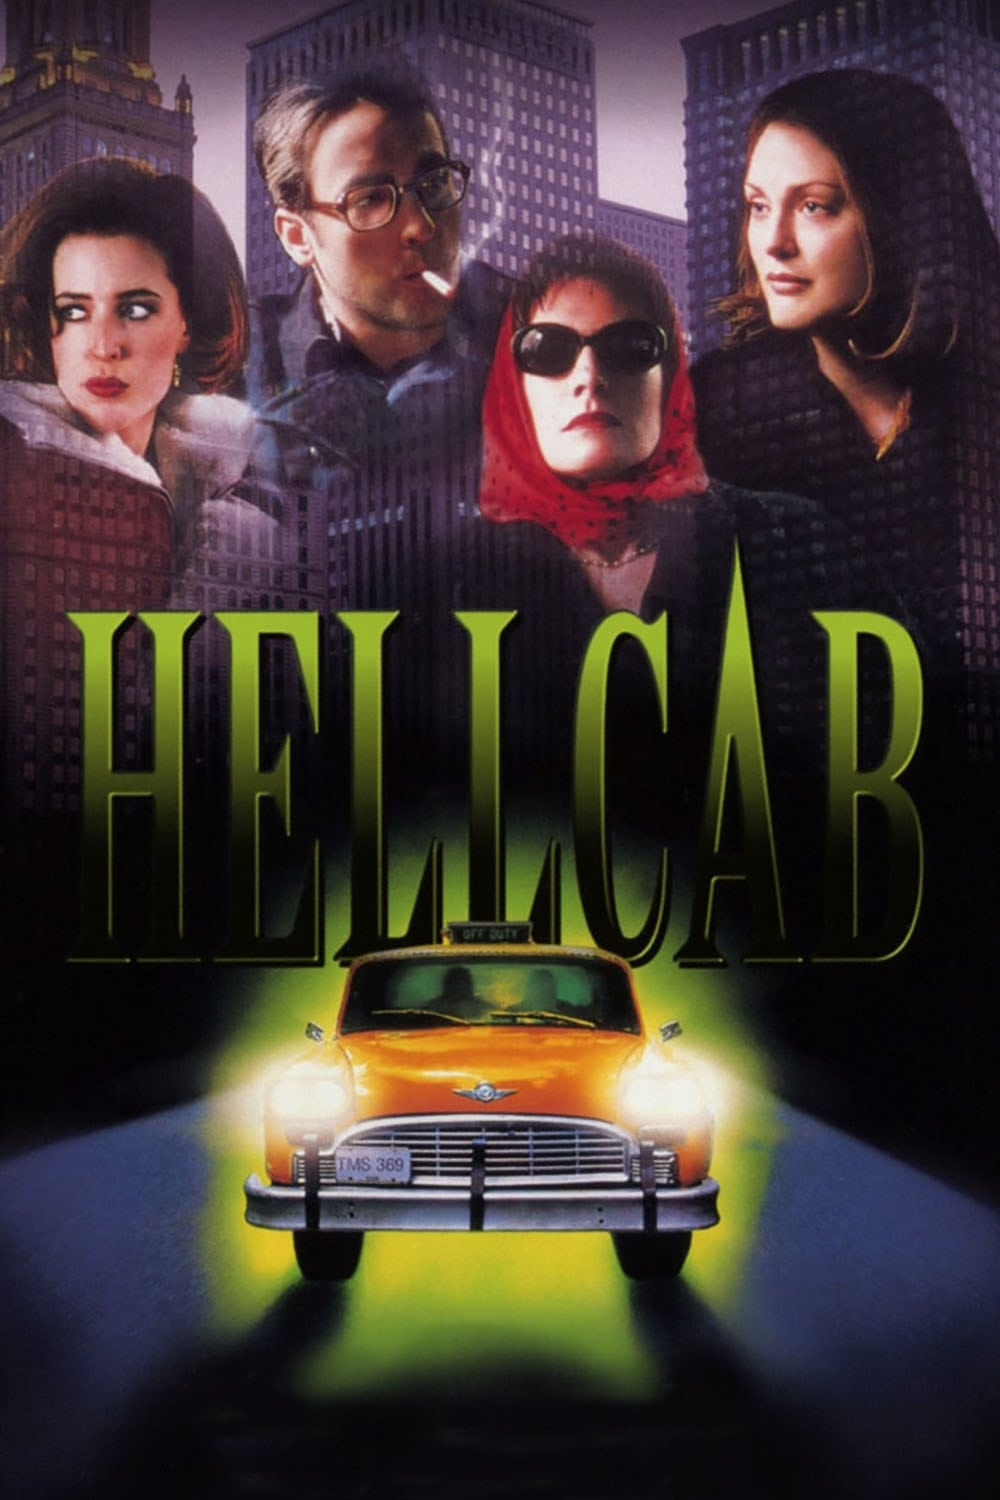 Chicago Cab (1997)